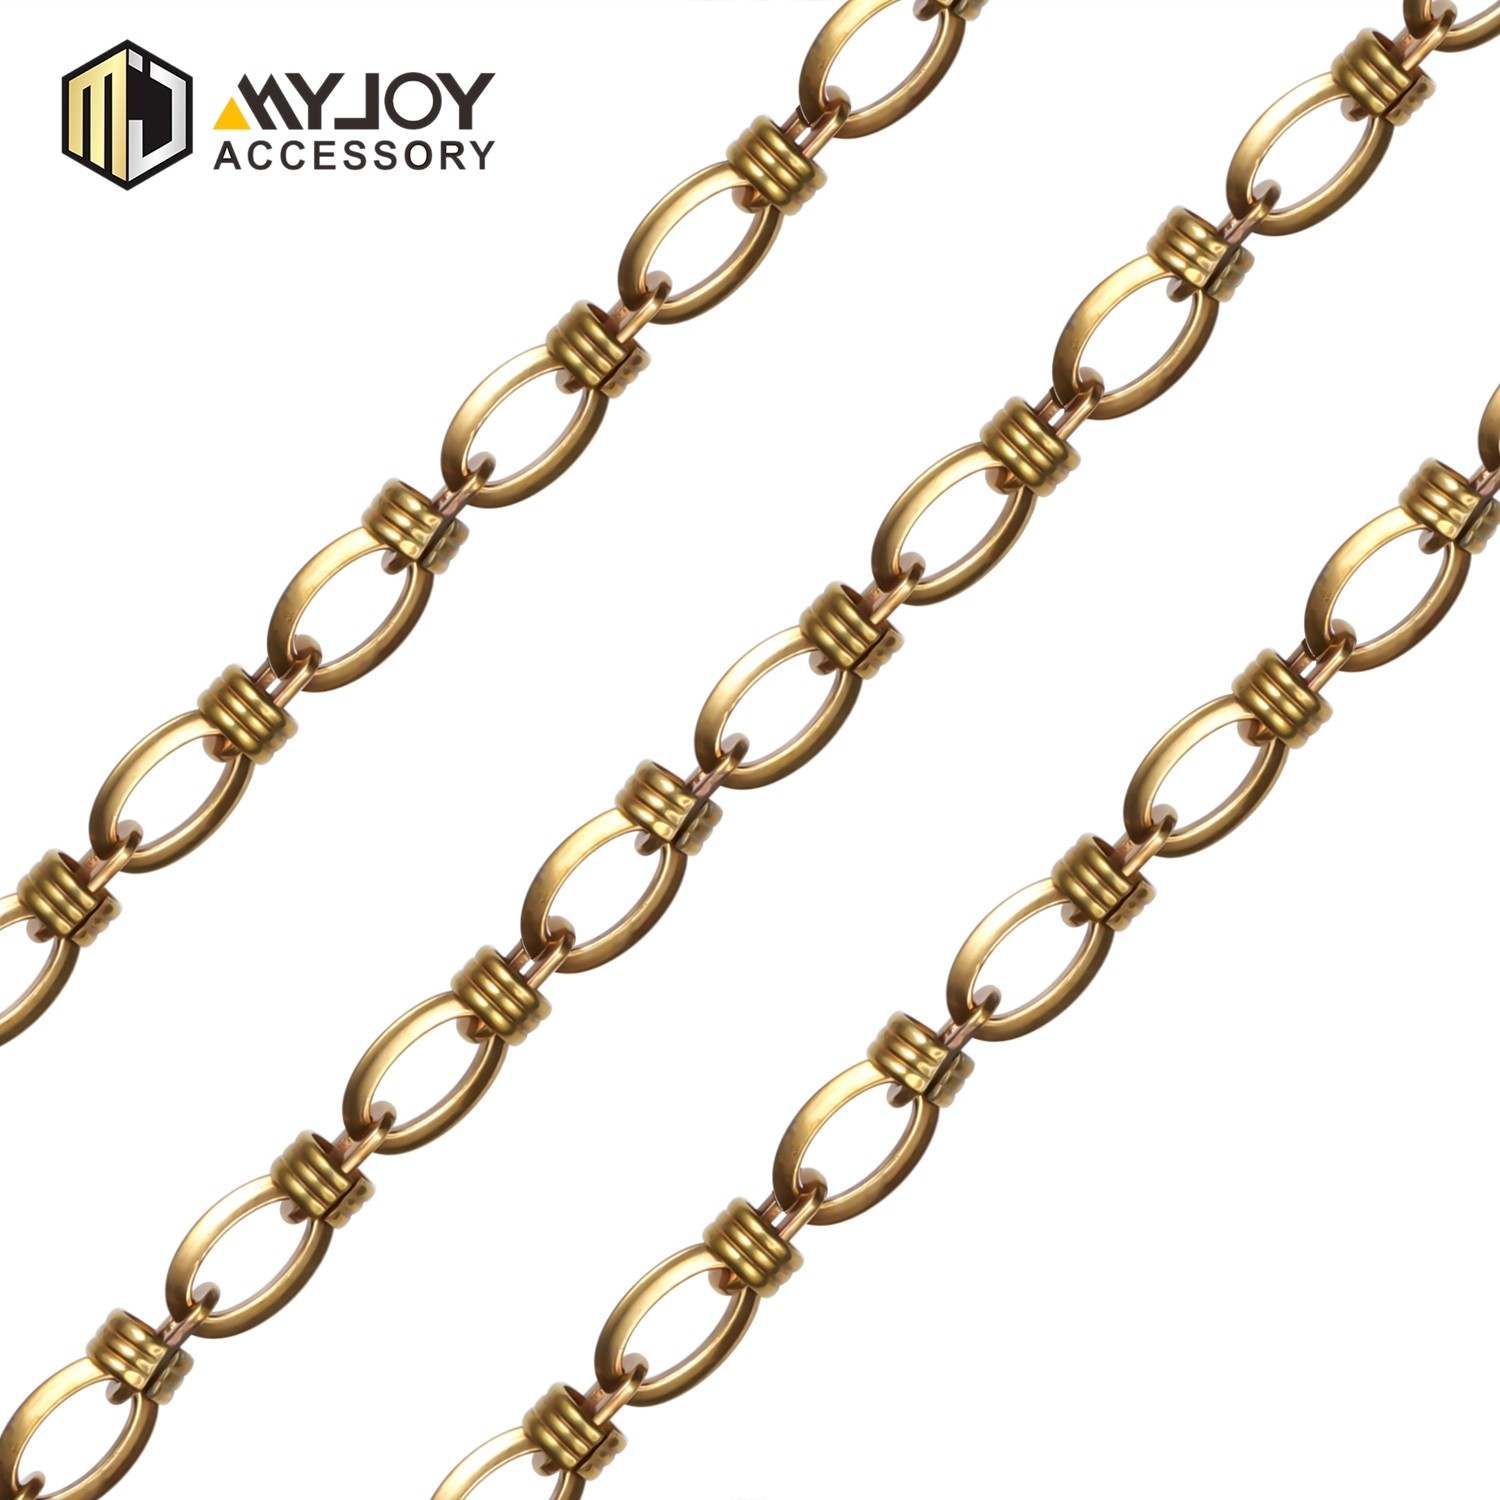 MYJOY vogue purse chain Supply for purses-3